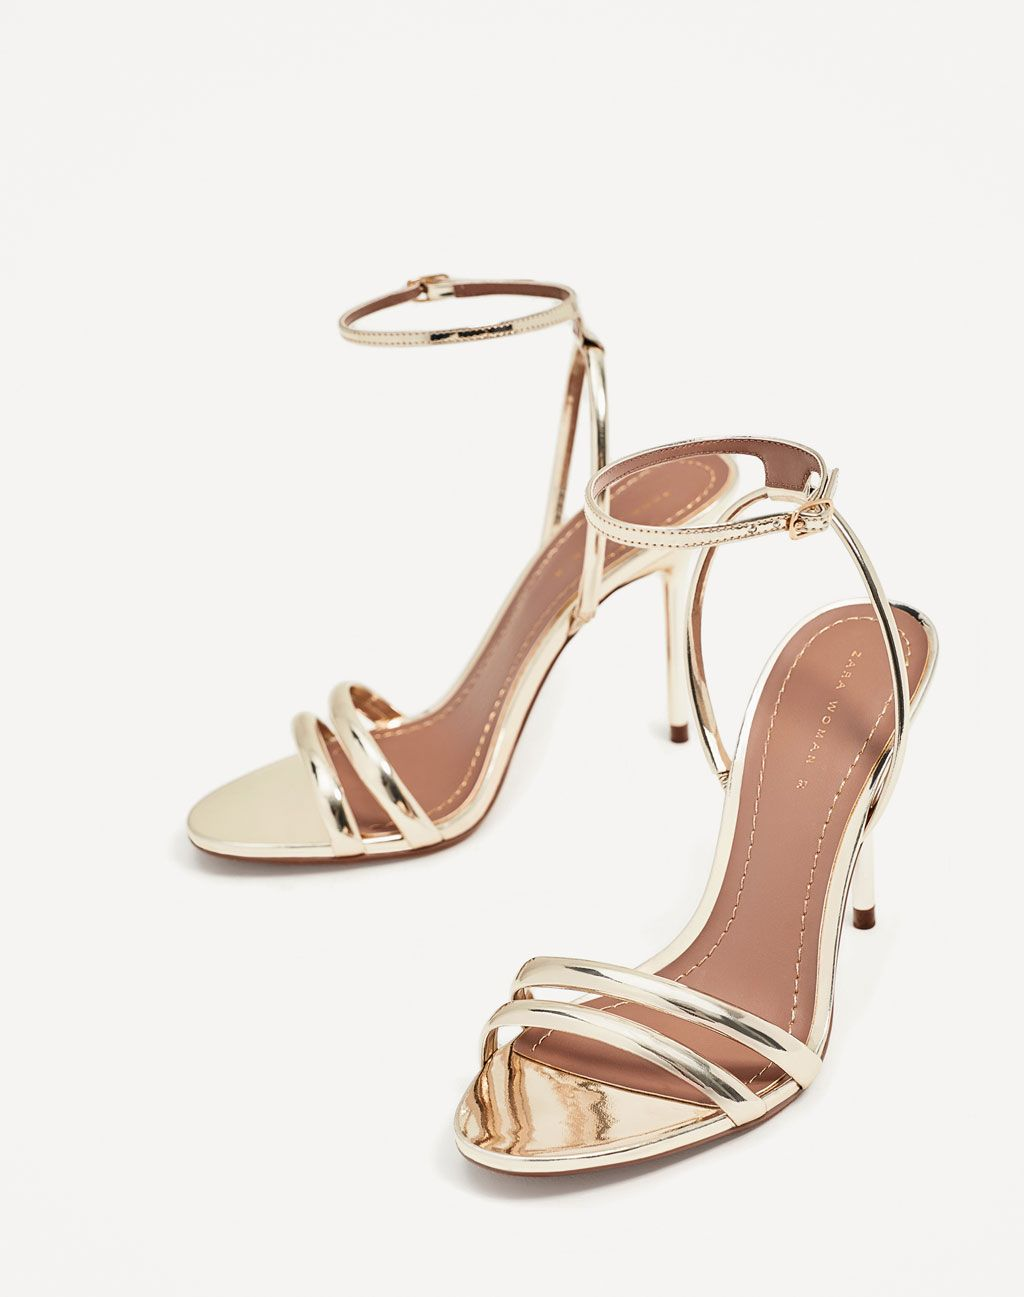 617b09aeaa GOLDEN STRAPPY HIGH HEEL SANDALS-View all-SHOES-WOMAN | ZARA ...